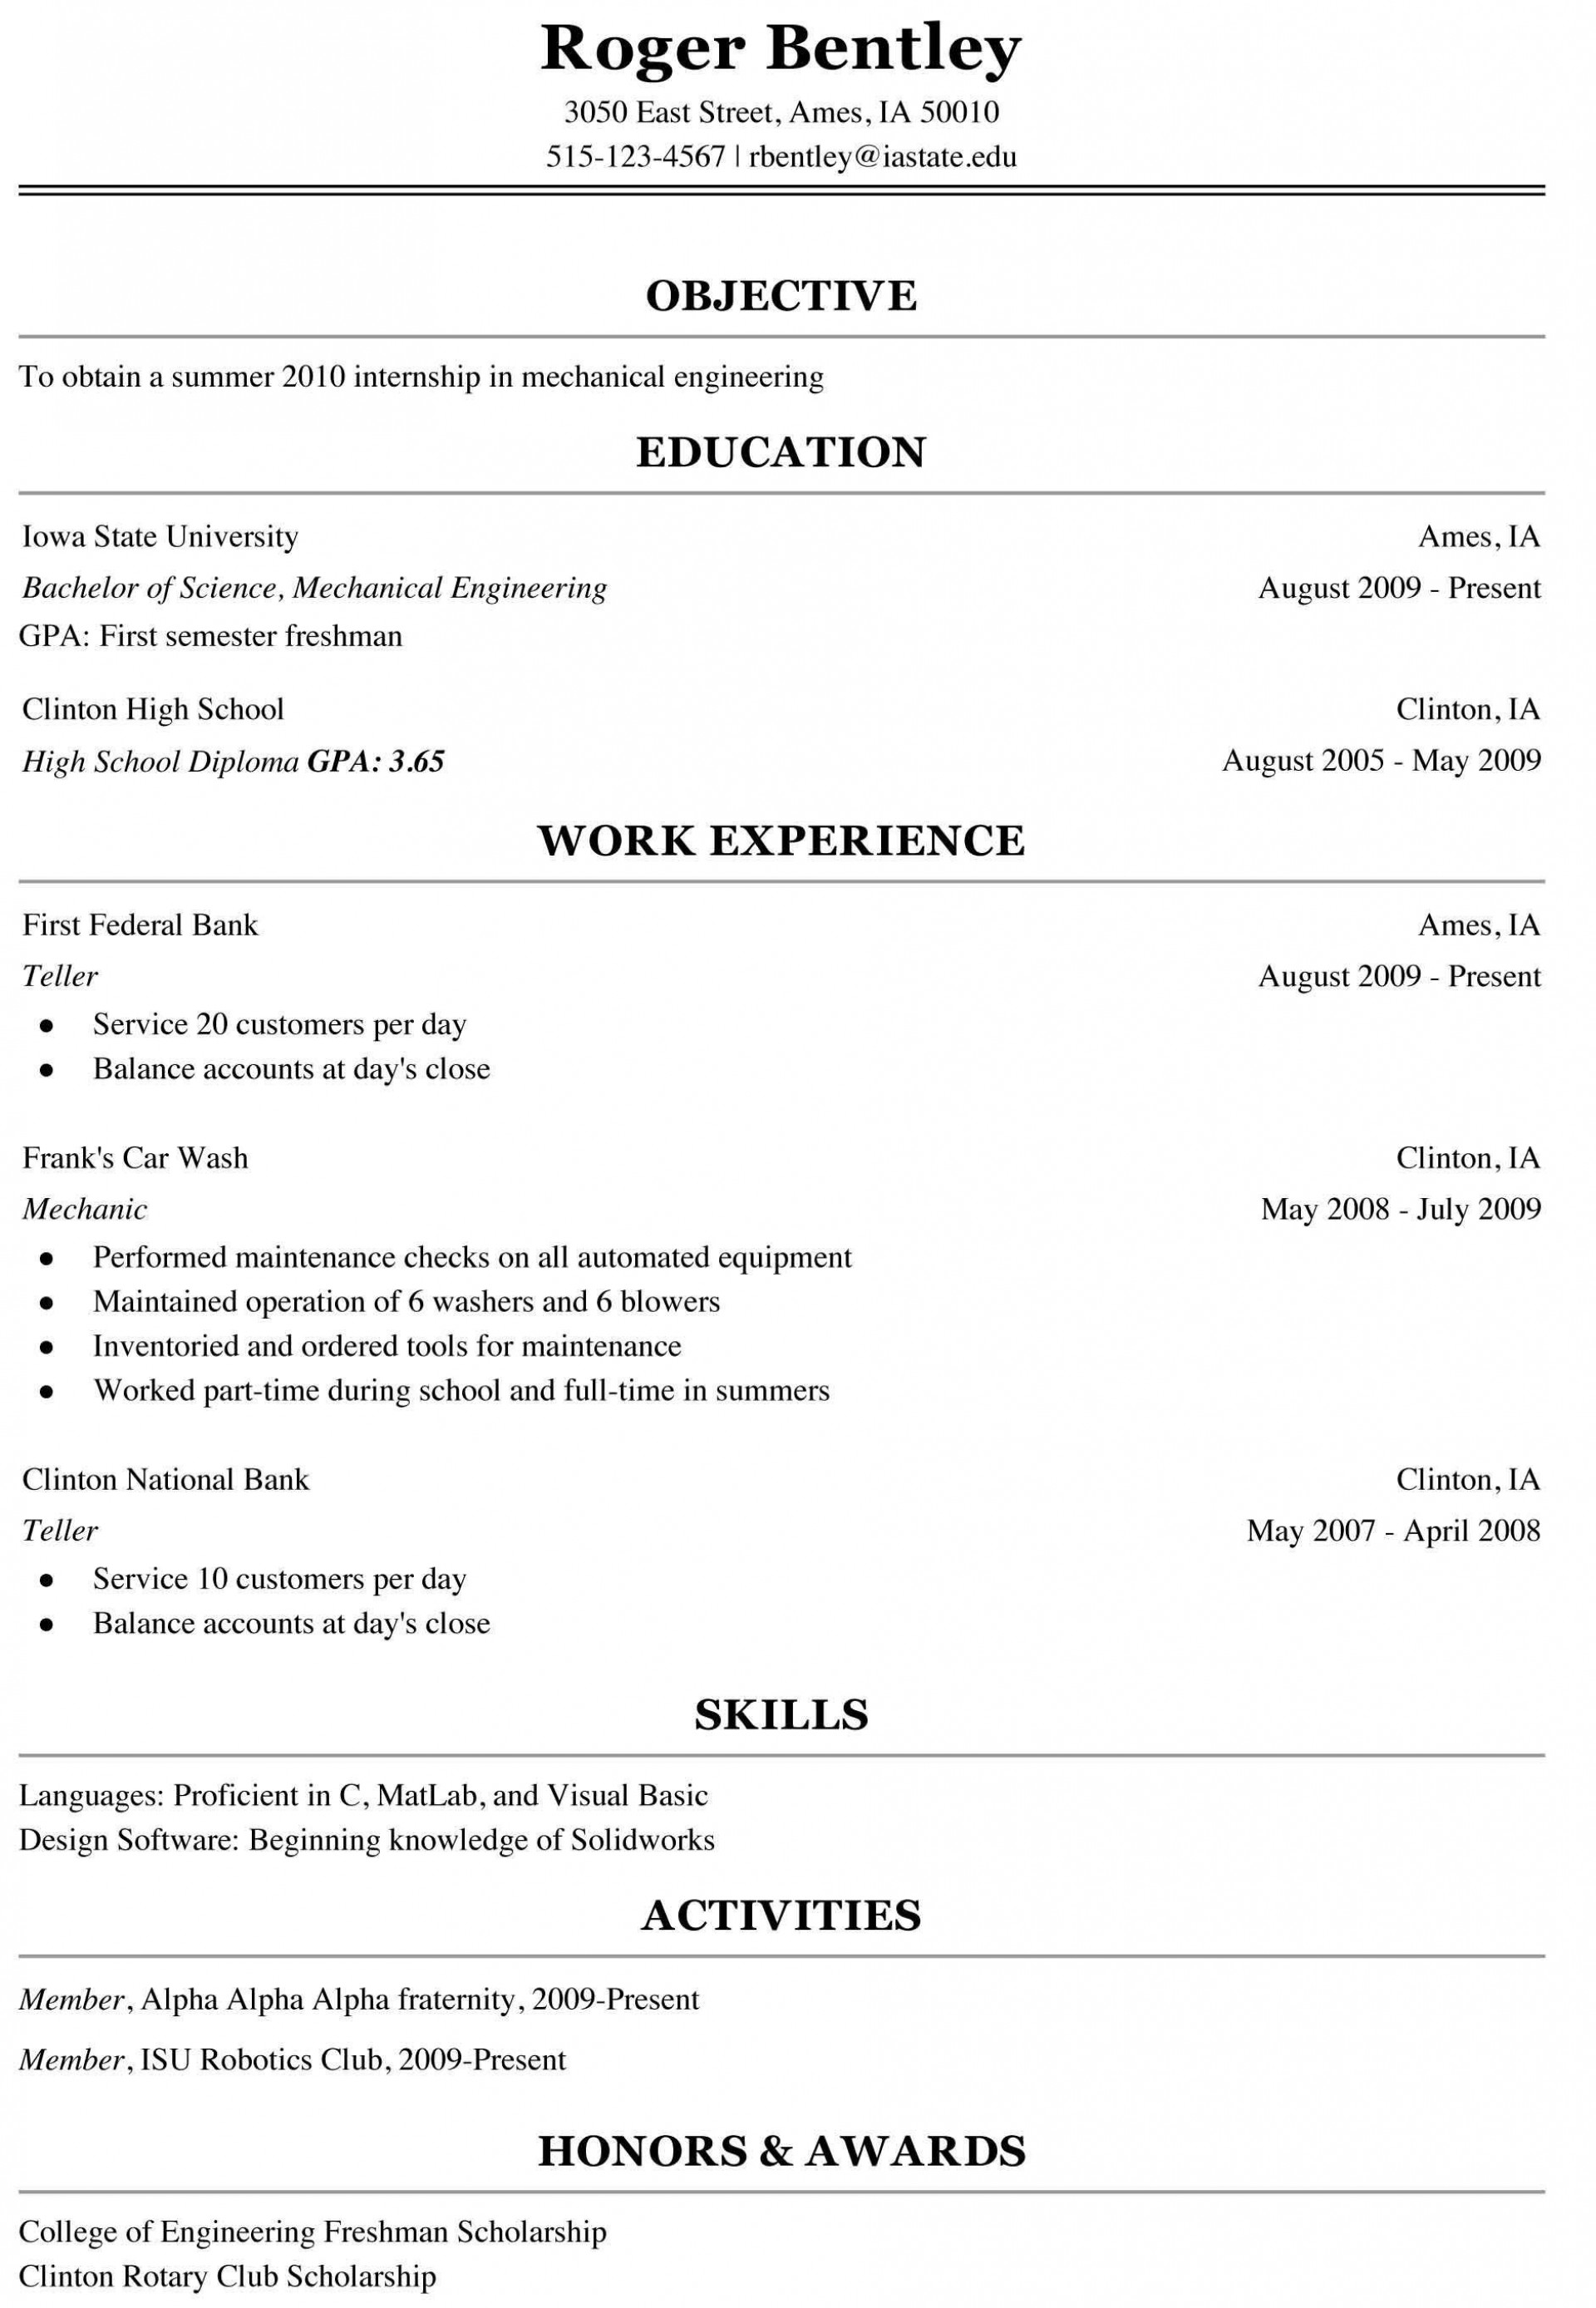 001 Remarkable College Graduate Resume Template Image  Templates Grad Example Recent Objective1920